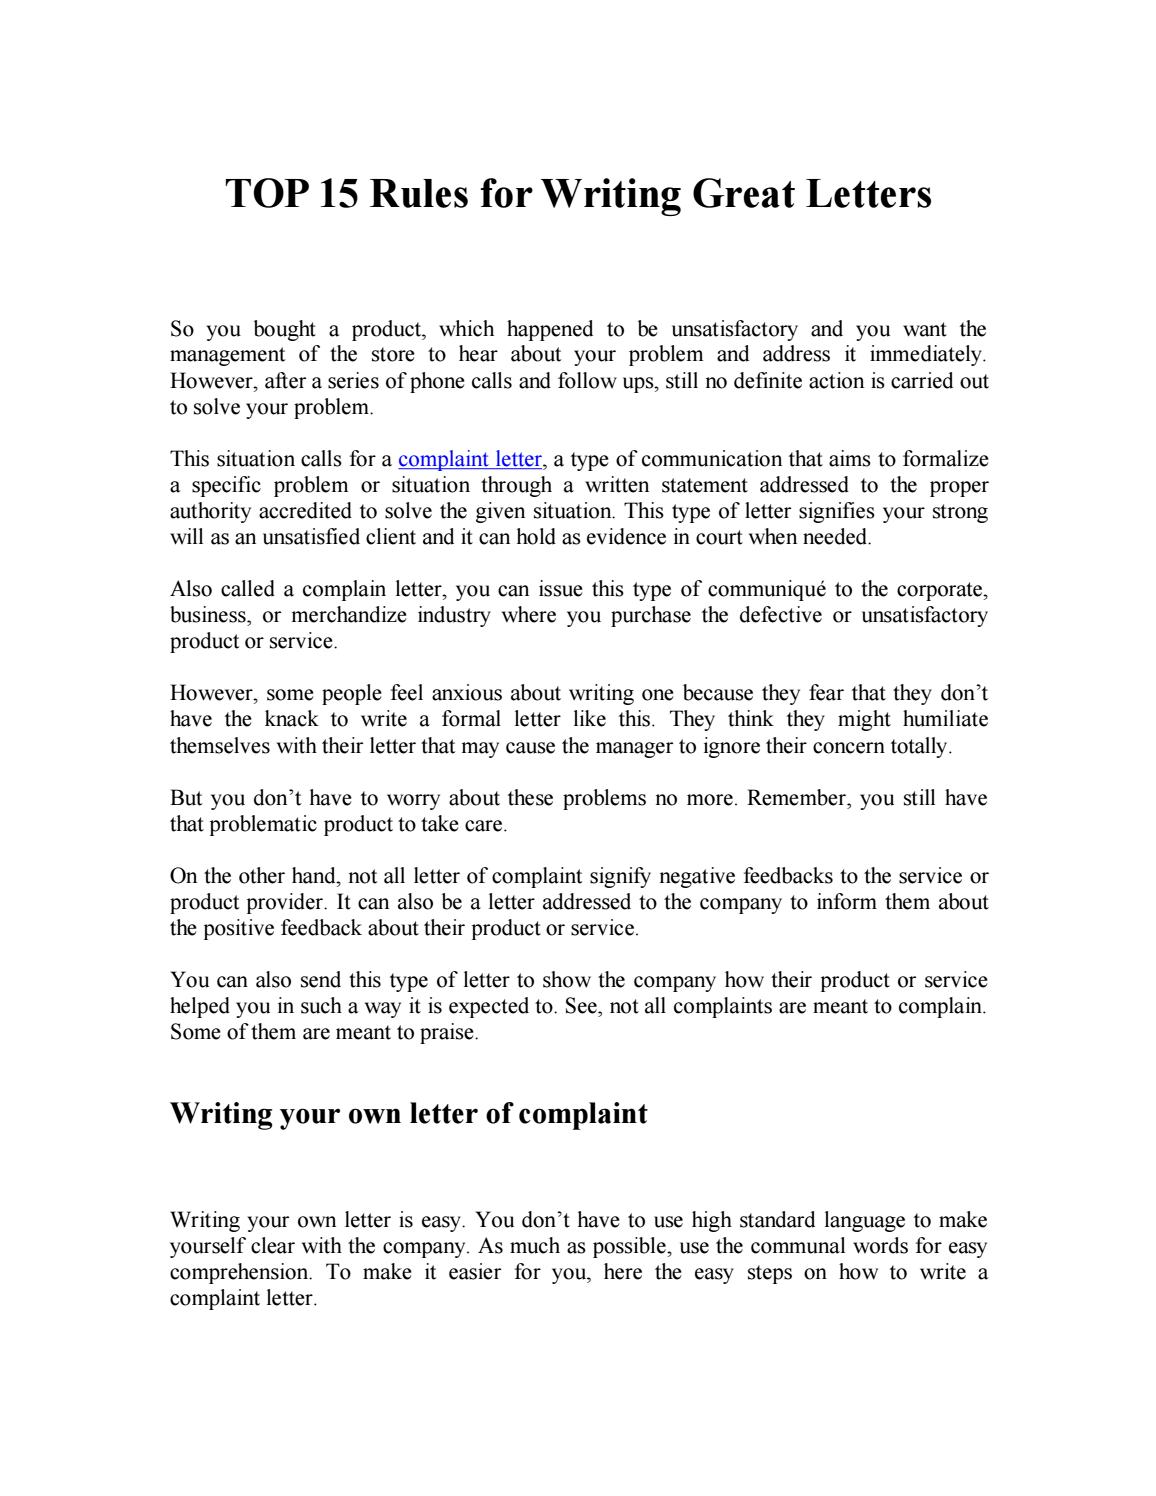 Top 15 rules for writing great letters by effective letters issuu altavistaventures Image collections